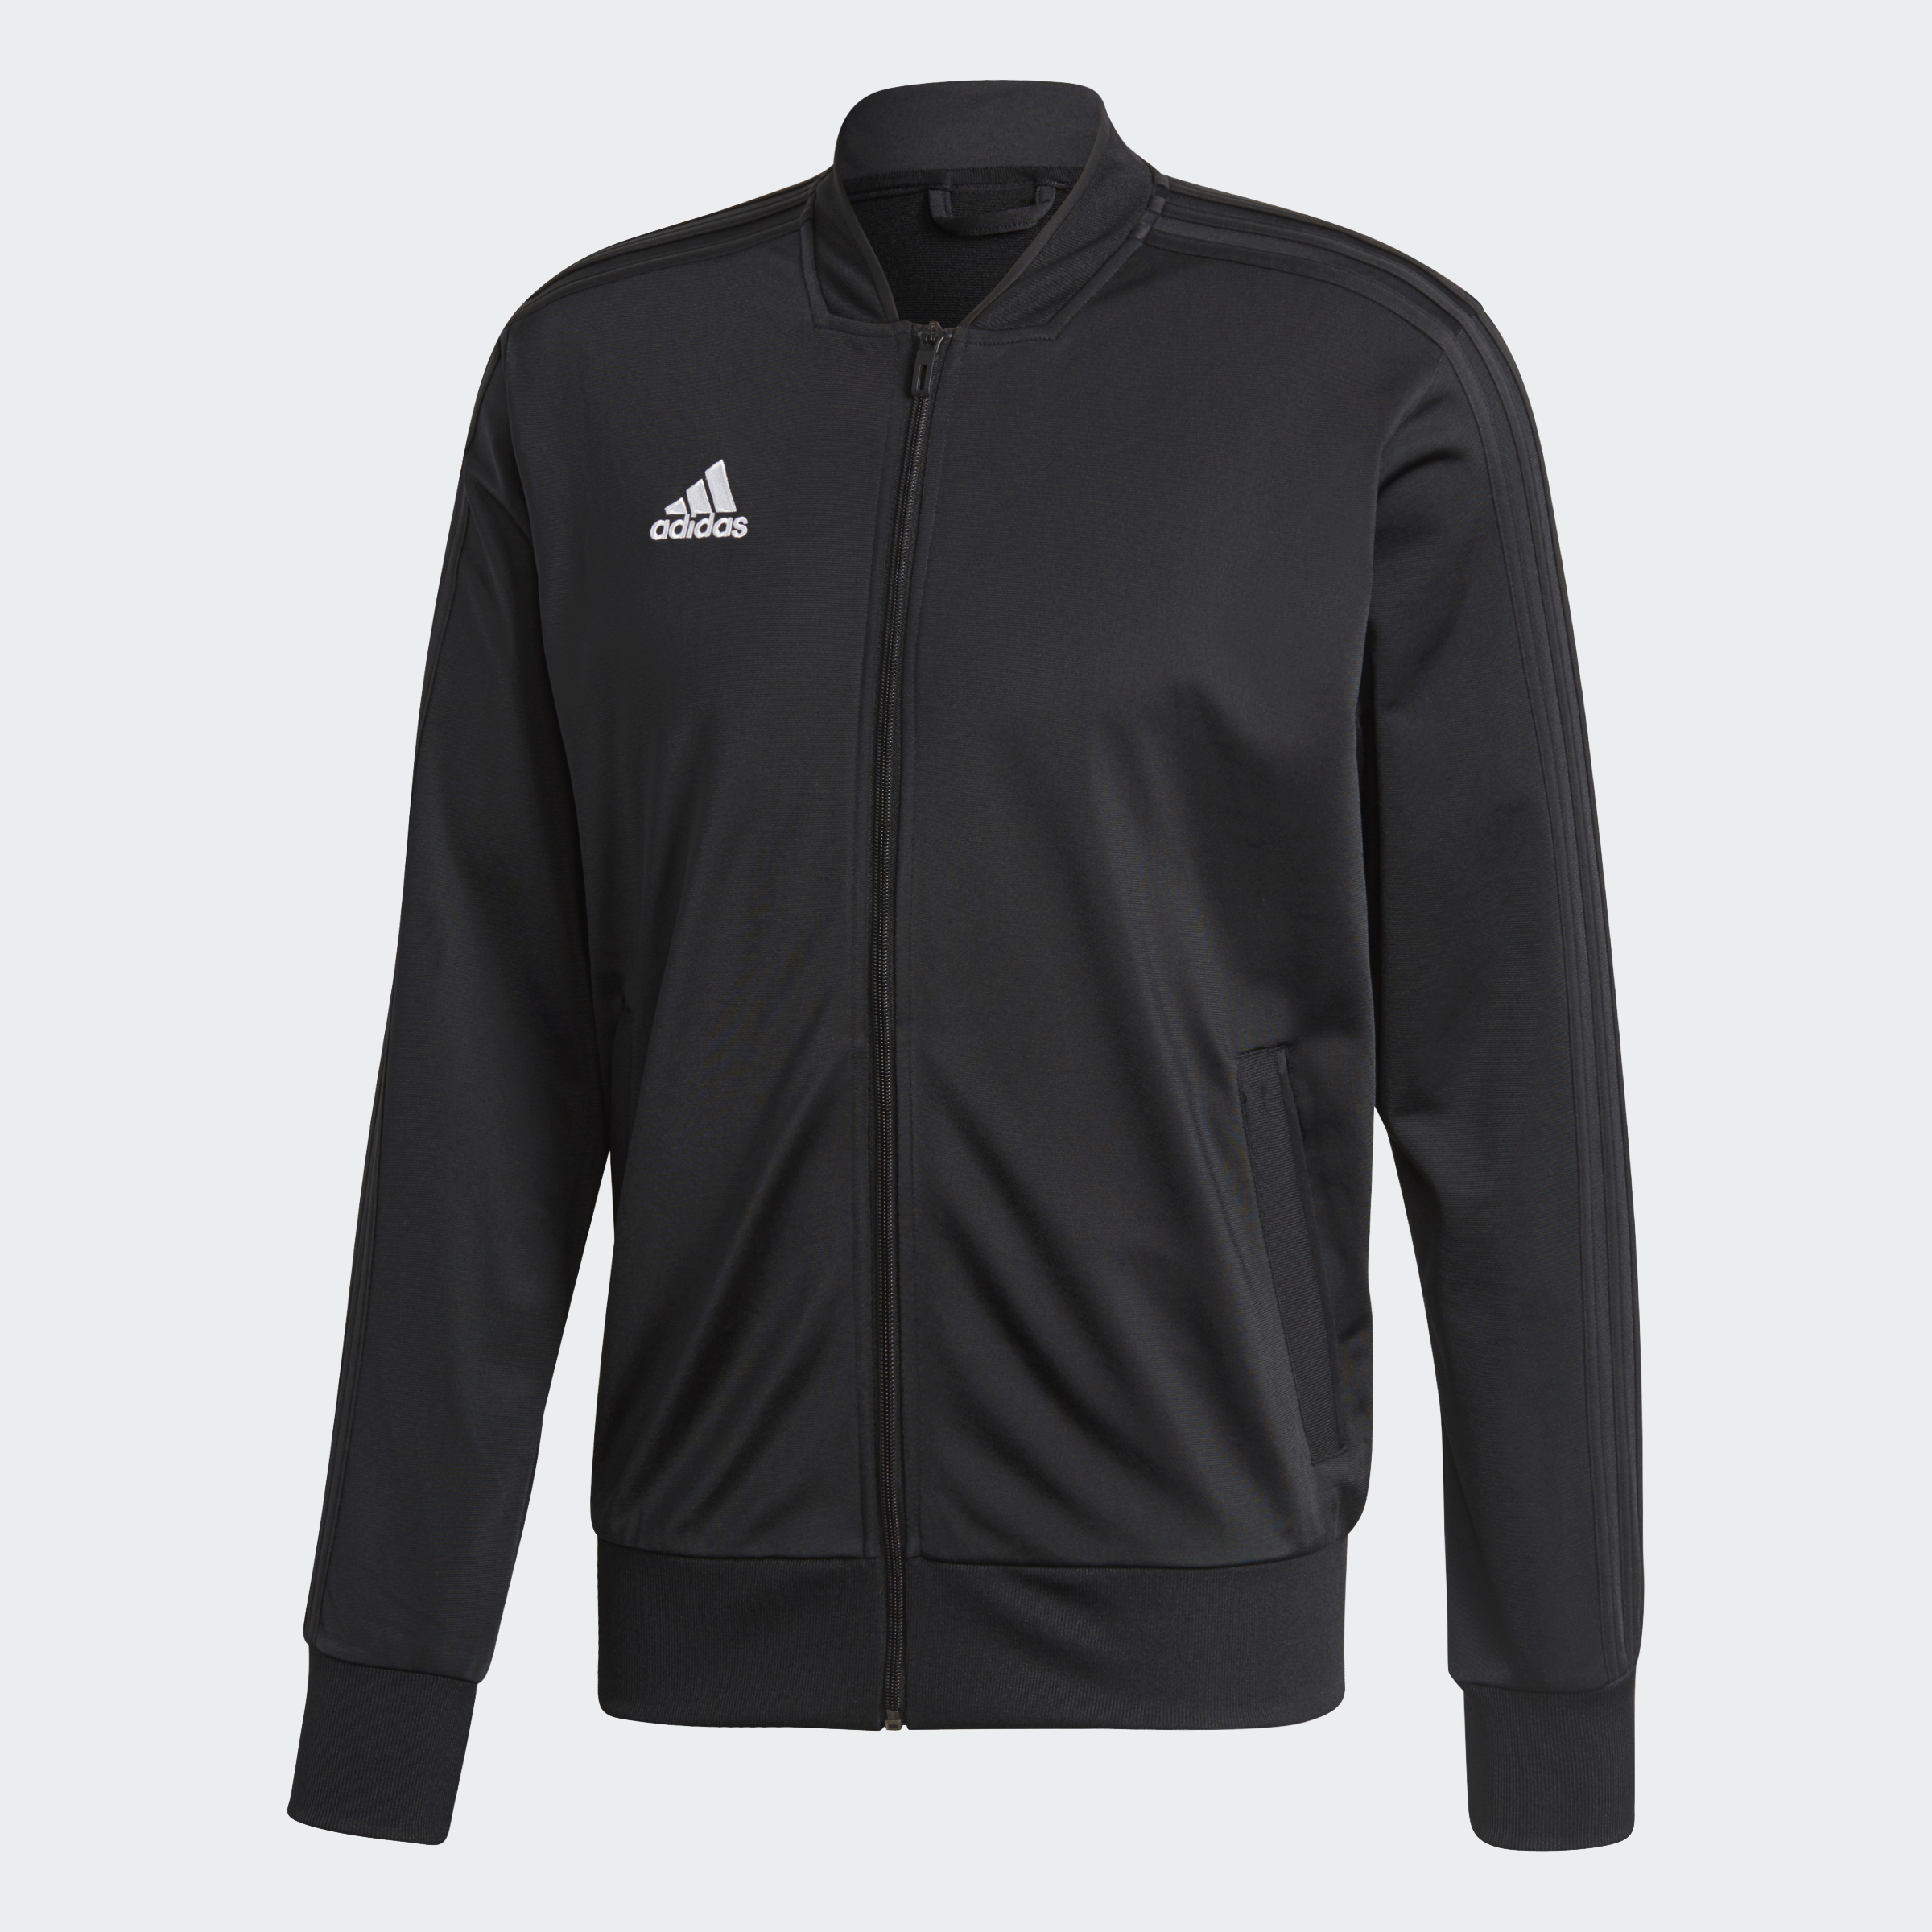 Details about adidas Condivo 18 Jacket Men's